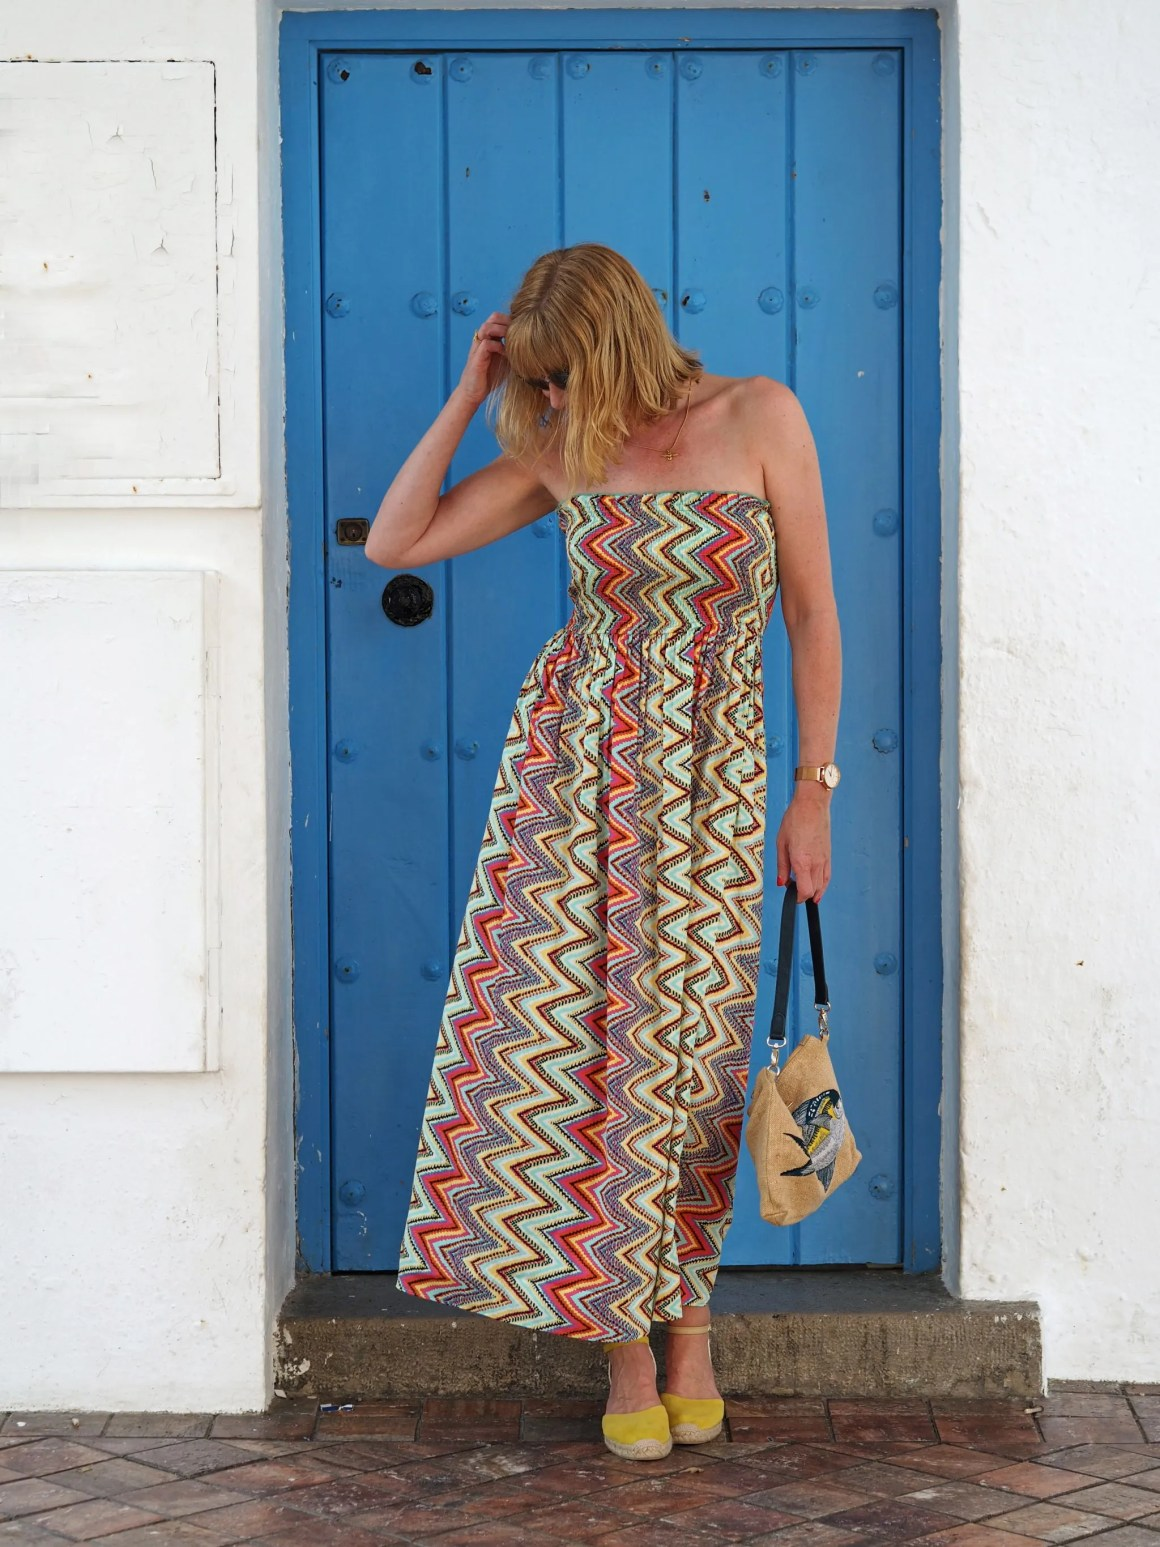 what-lizzy-loves-holiday-outfits-zigzag-maxi-dress-yellow-espadrilles-blue-door-nerja